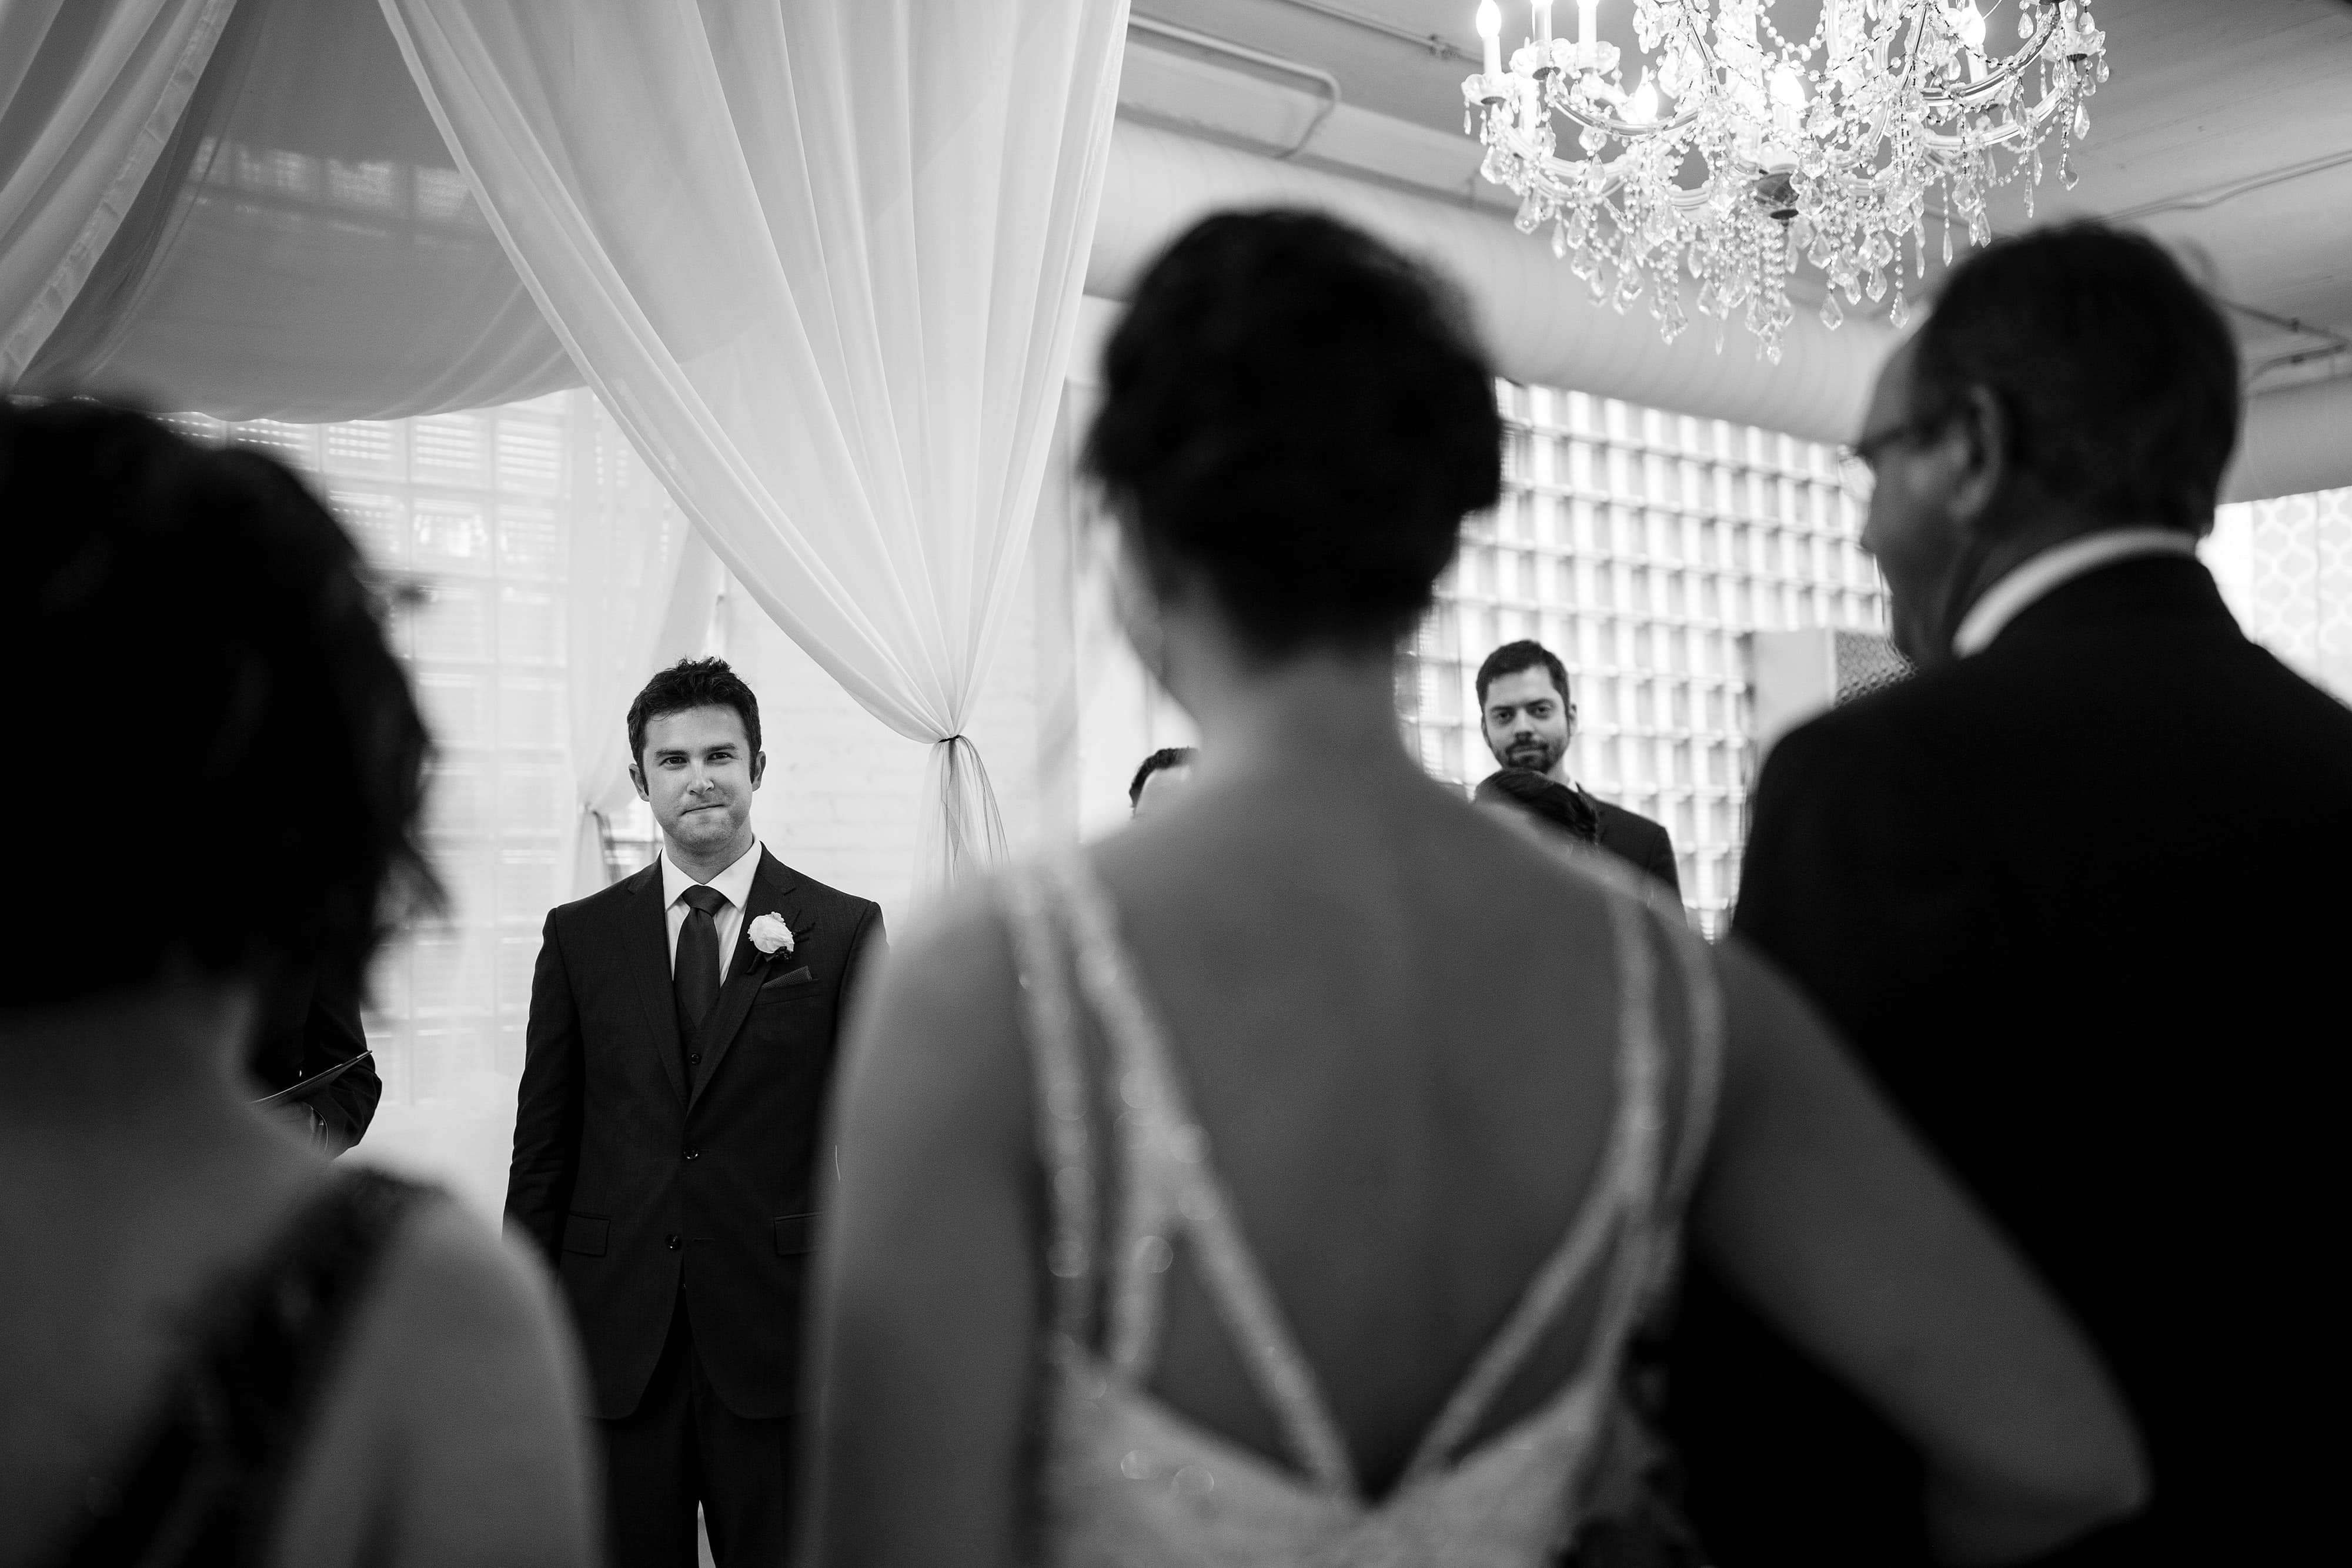 The groom looks on during the ceremony at Room 1520